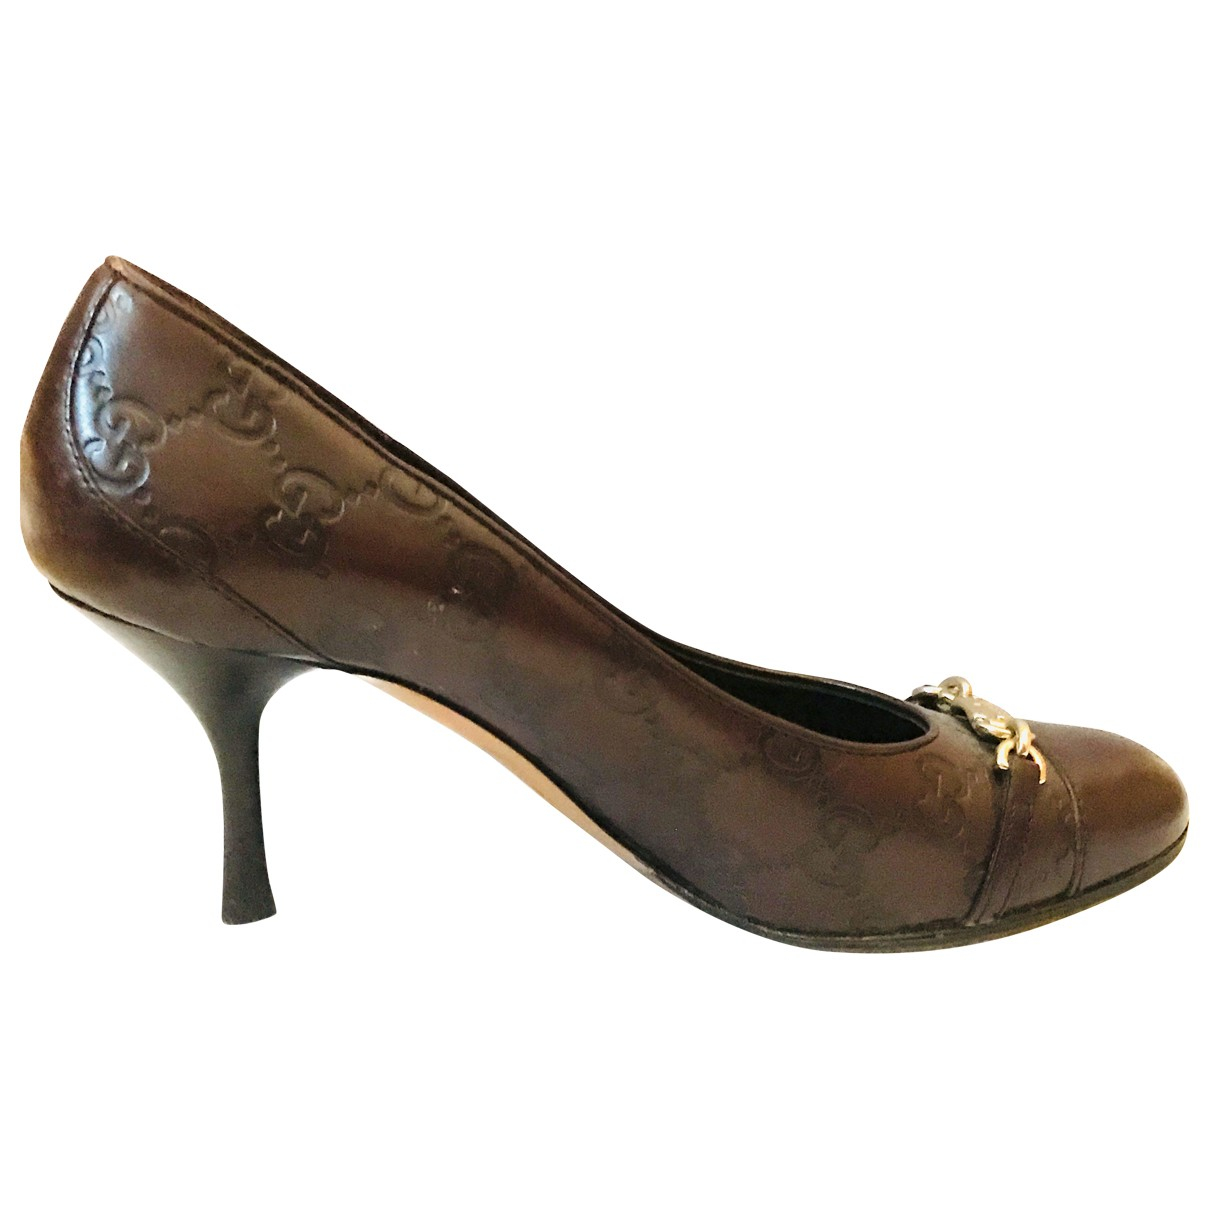 Gucci \N Brown Leather Heels for Women 36.5 EU